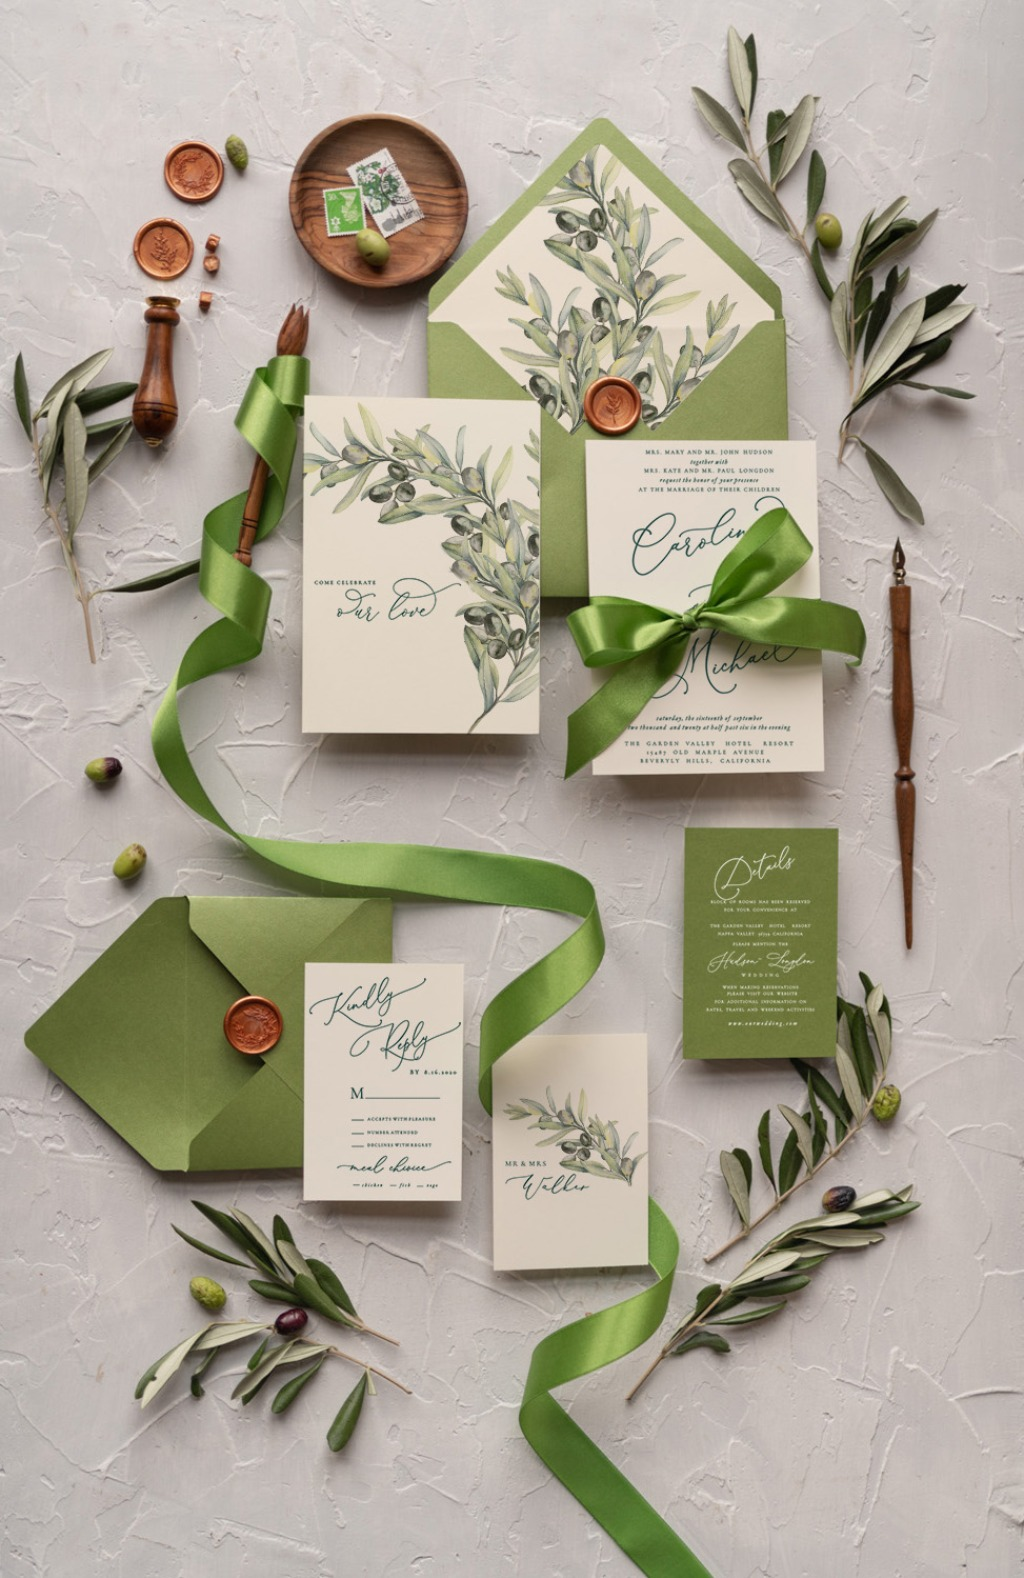 Wedding invitations with olives